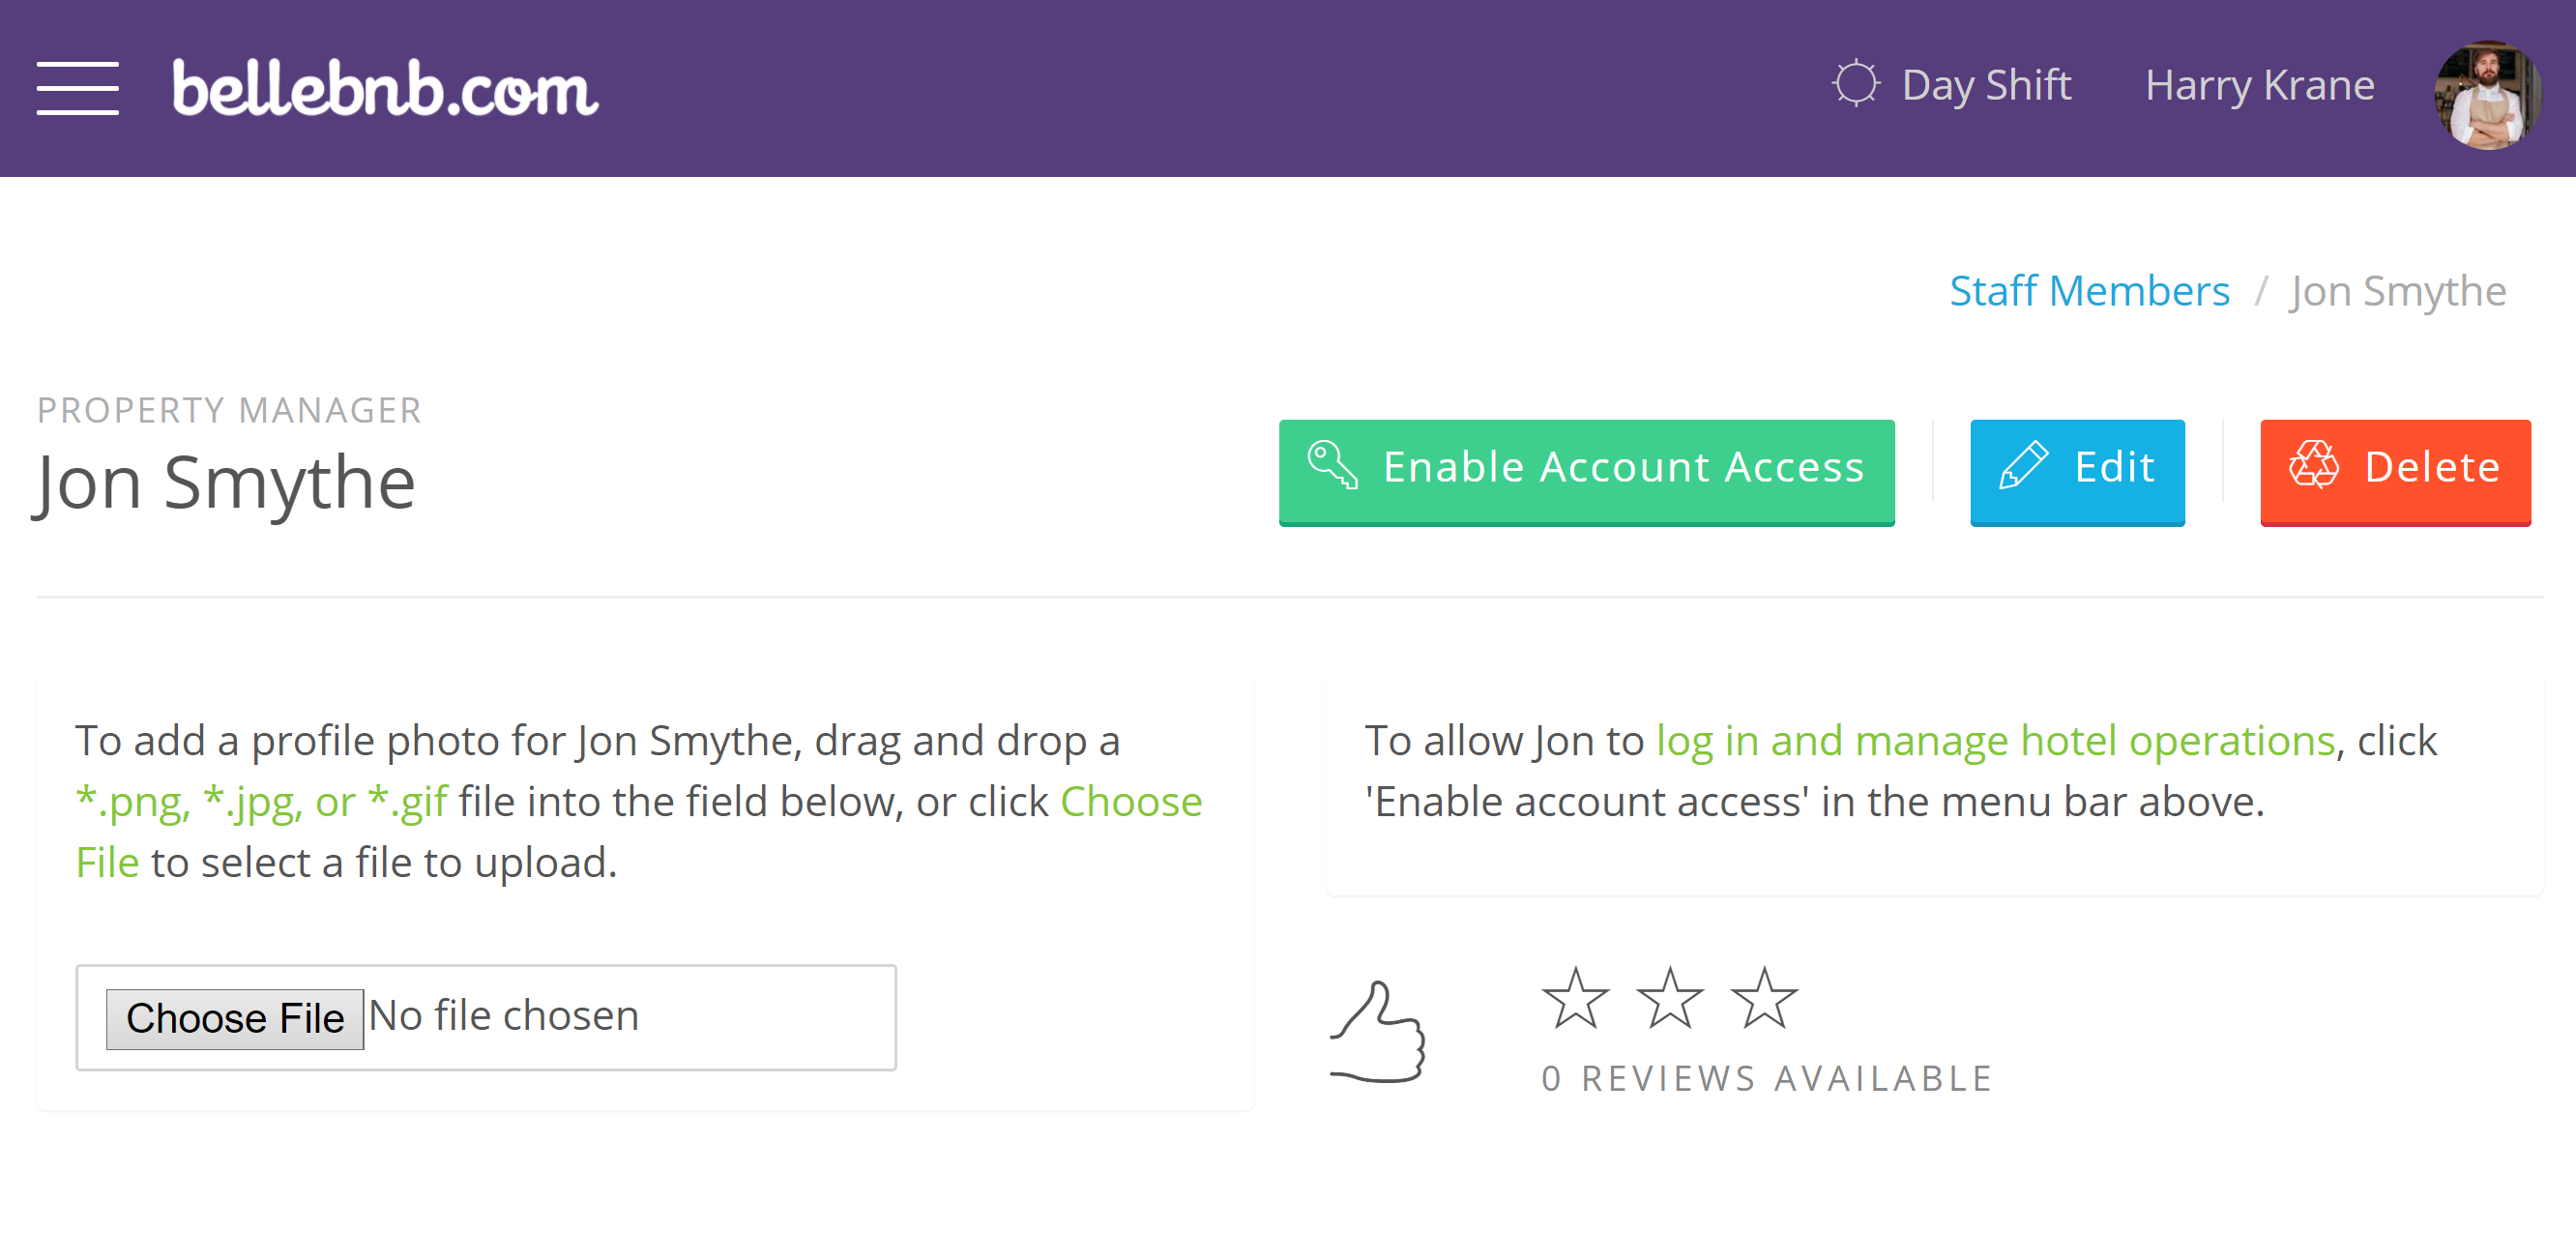 'Enable Account Access' and assign a login email and password for this user. Be sure to use a valid email address in case the user needs to reset their password in the future.